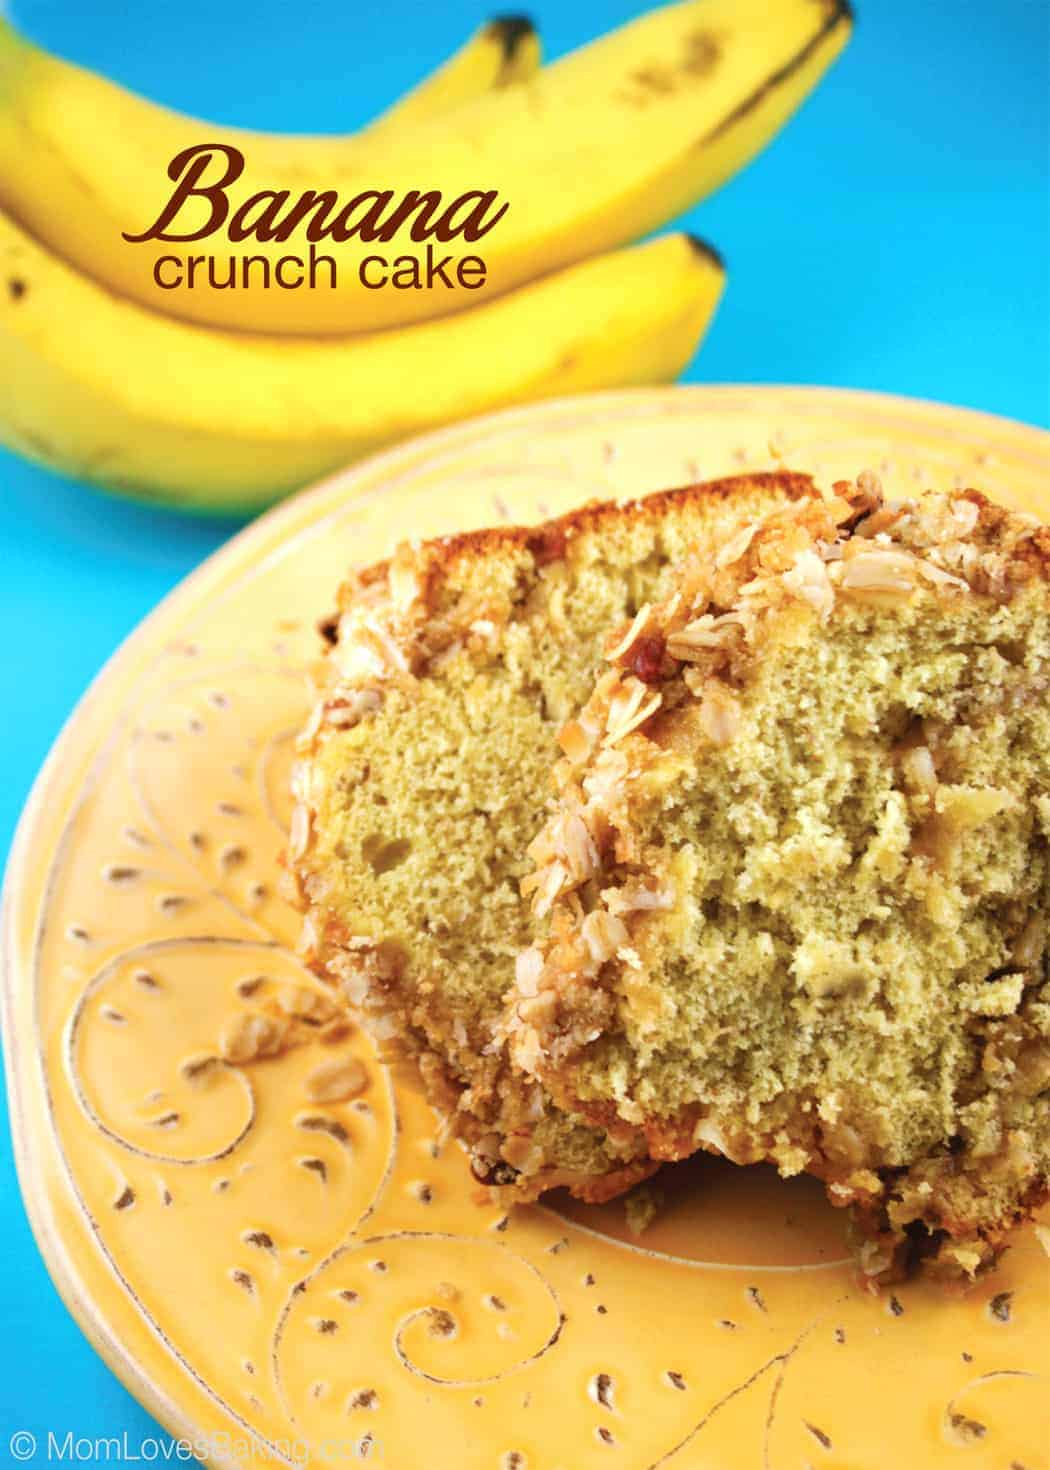 How Can I Make A Banana Cake